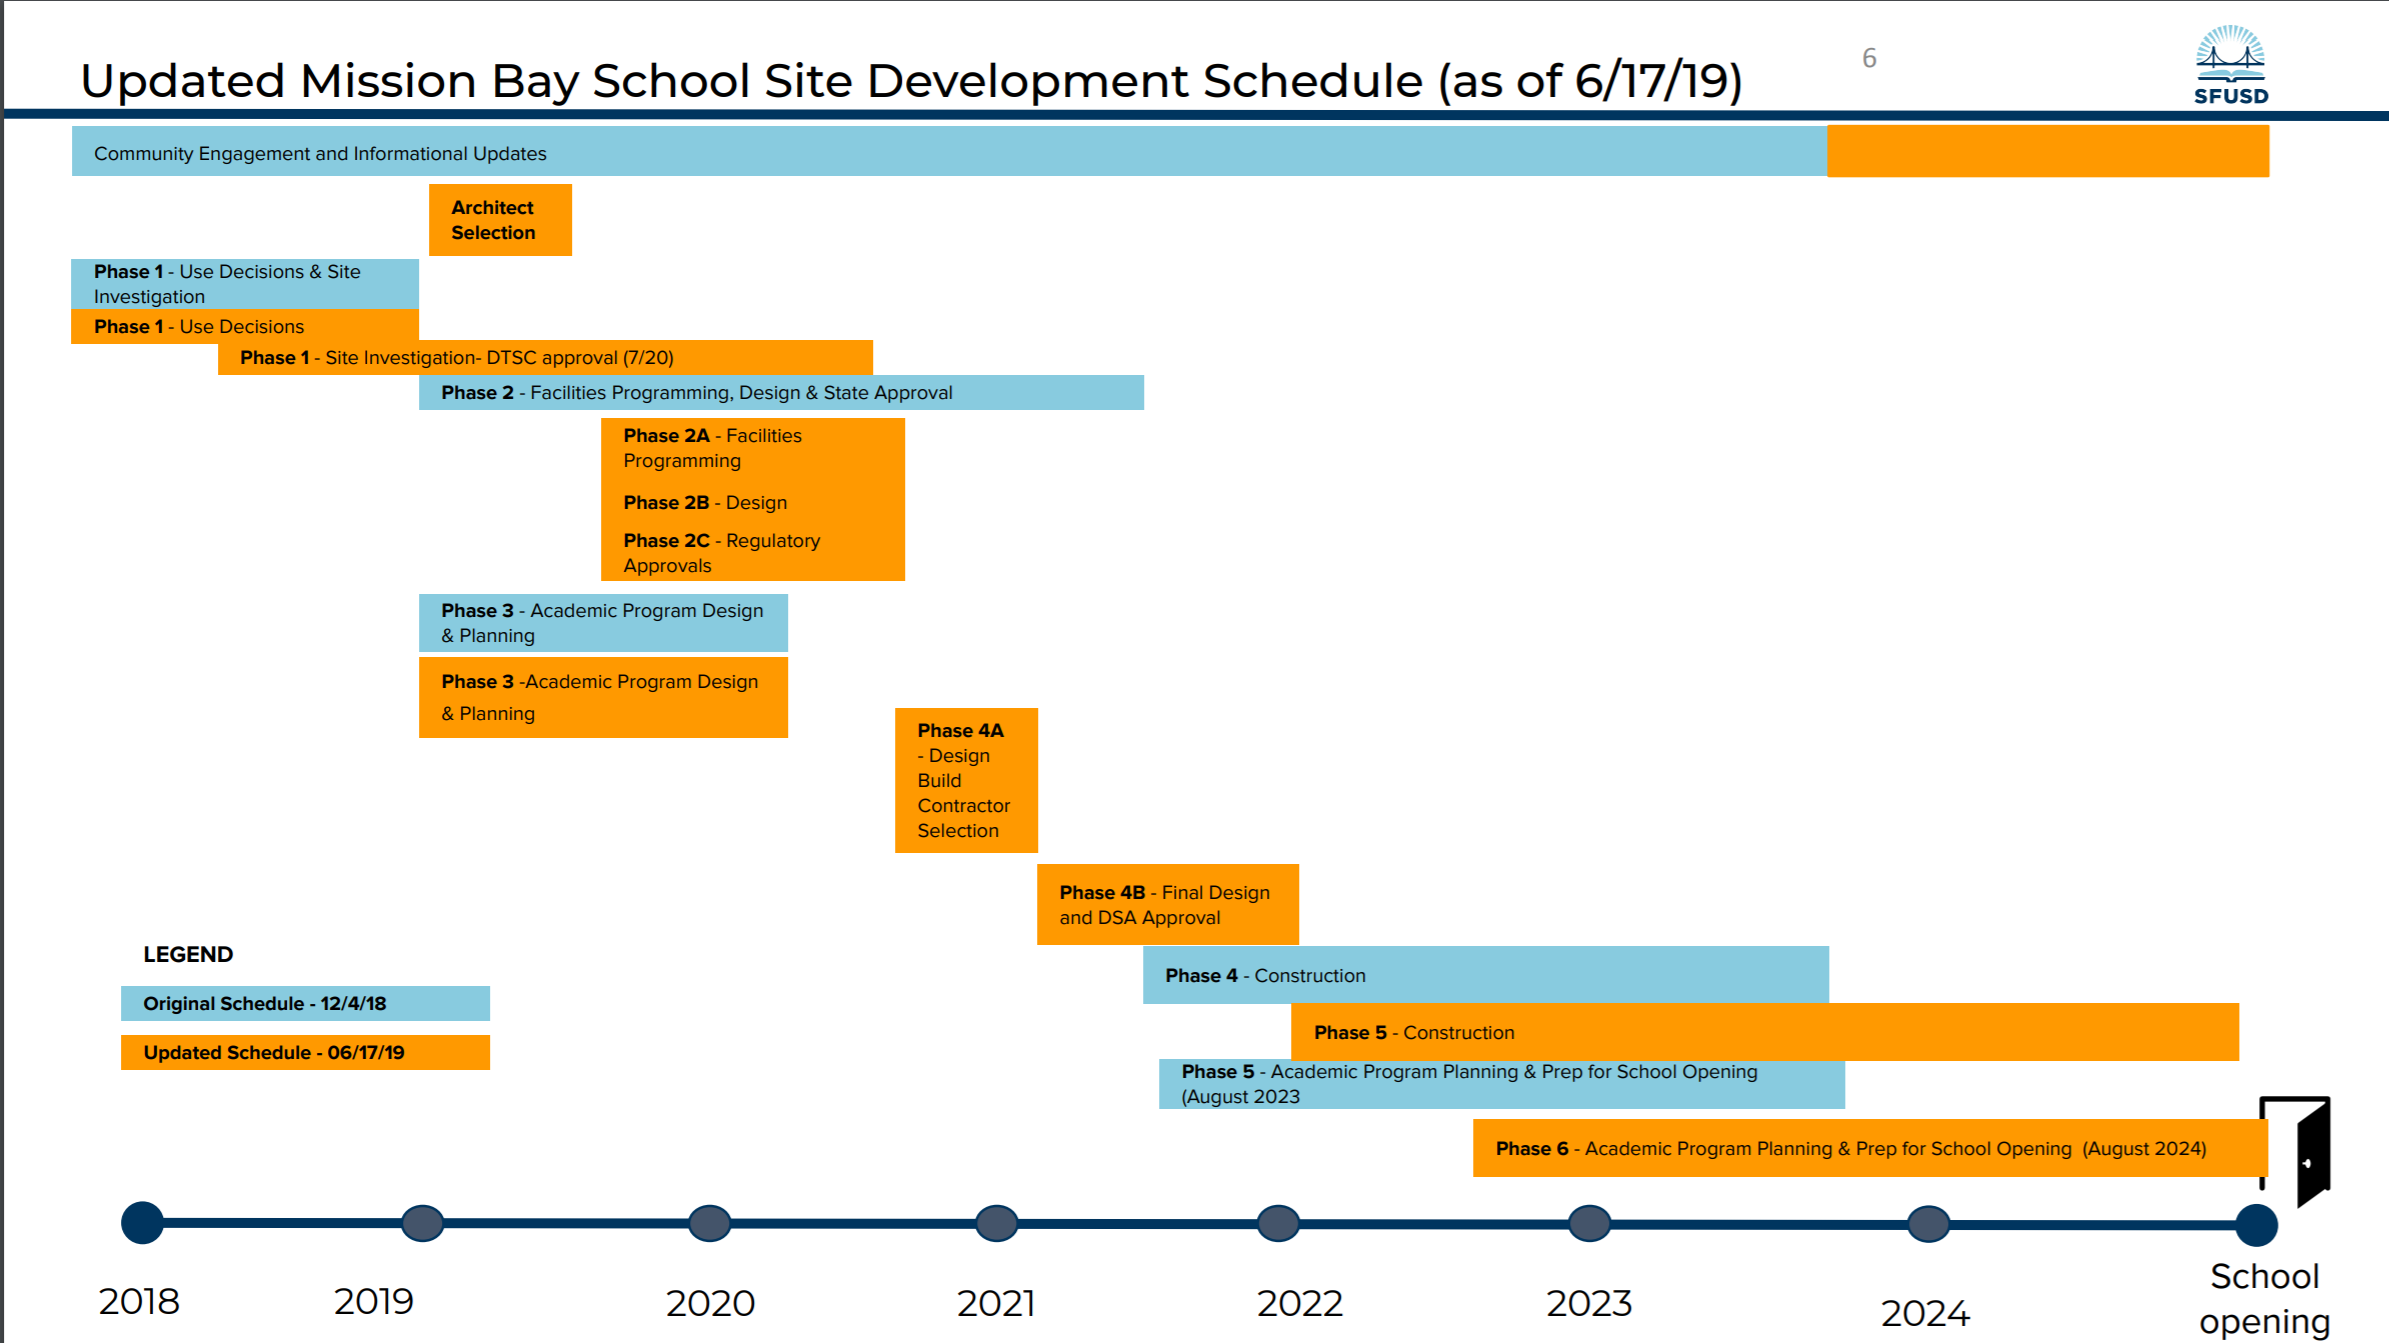 Current and previous schedule of Mission Bay Project Source: SFUSD